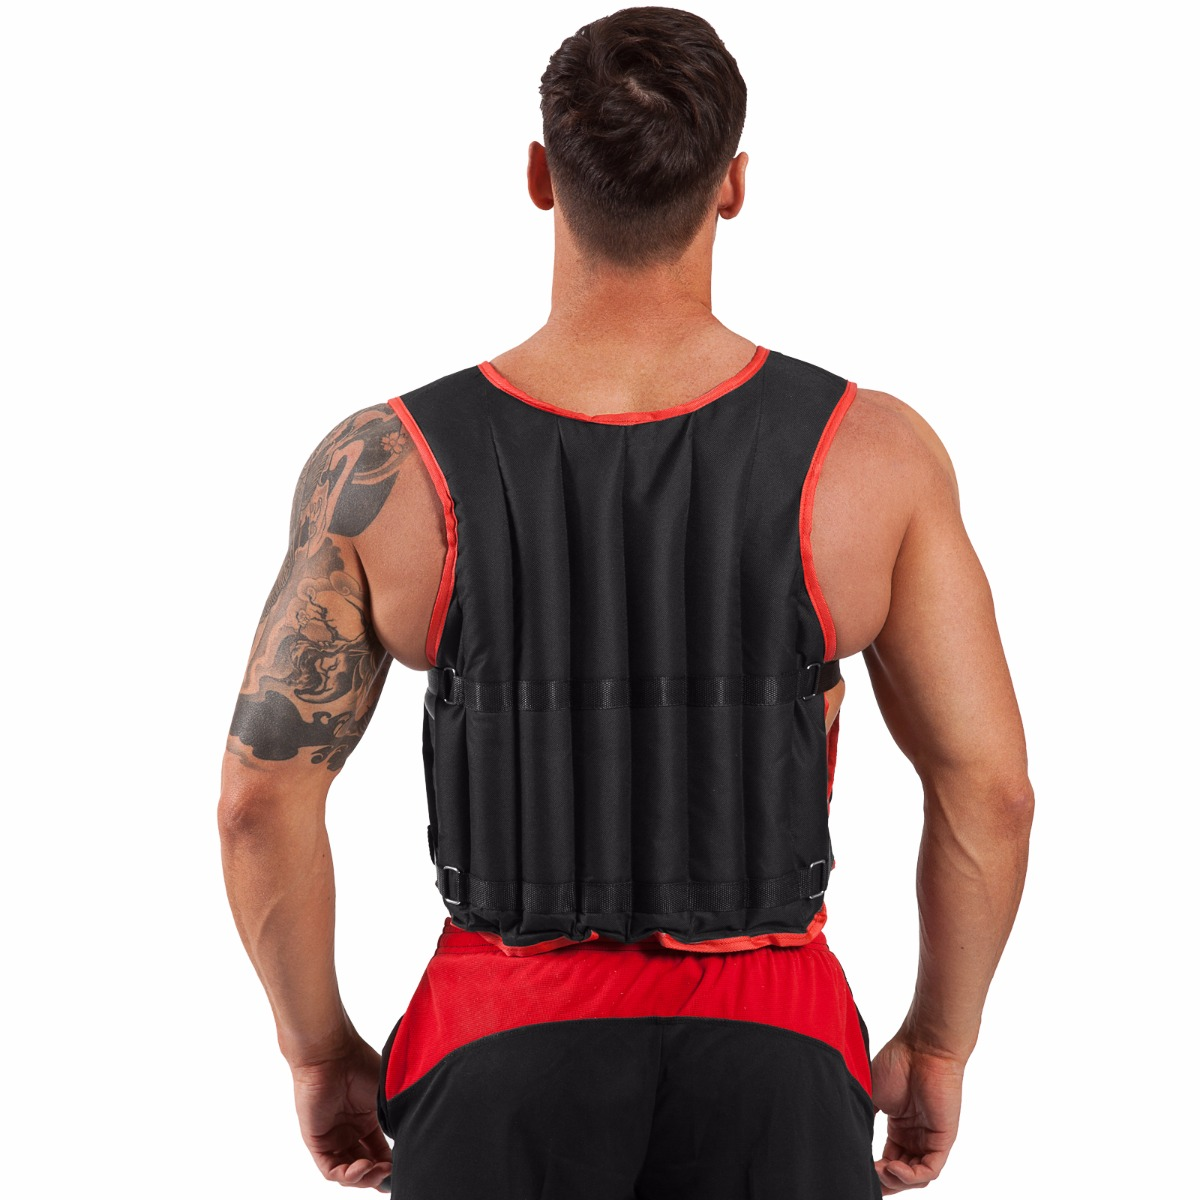 weight vest training weight loss